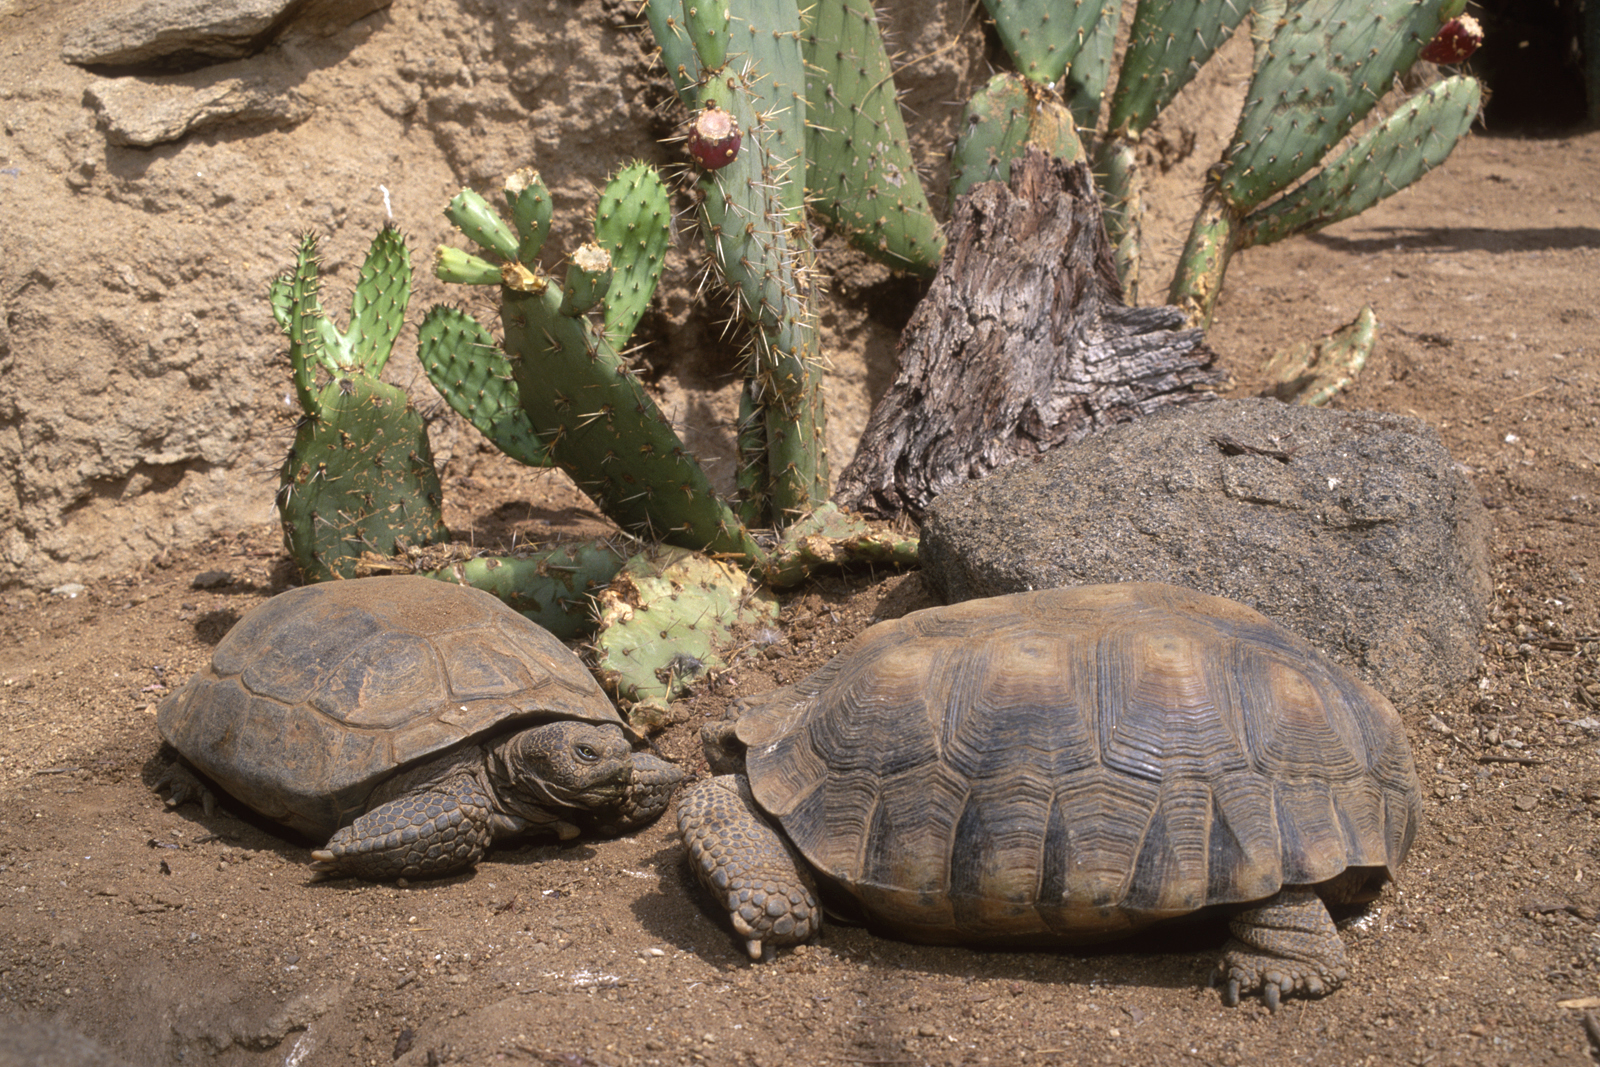 two desert tortoises square off